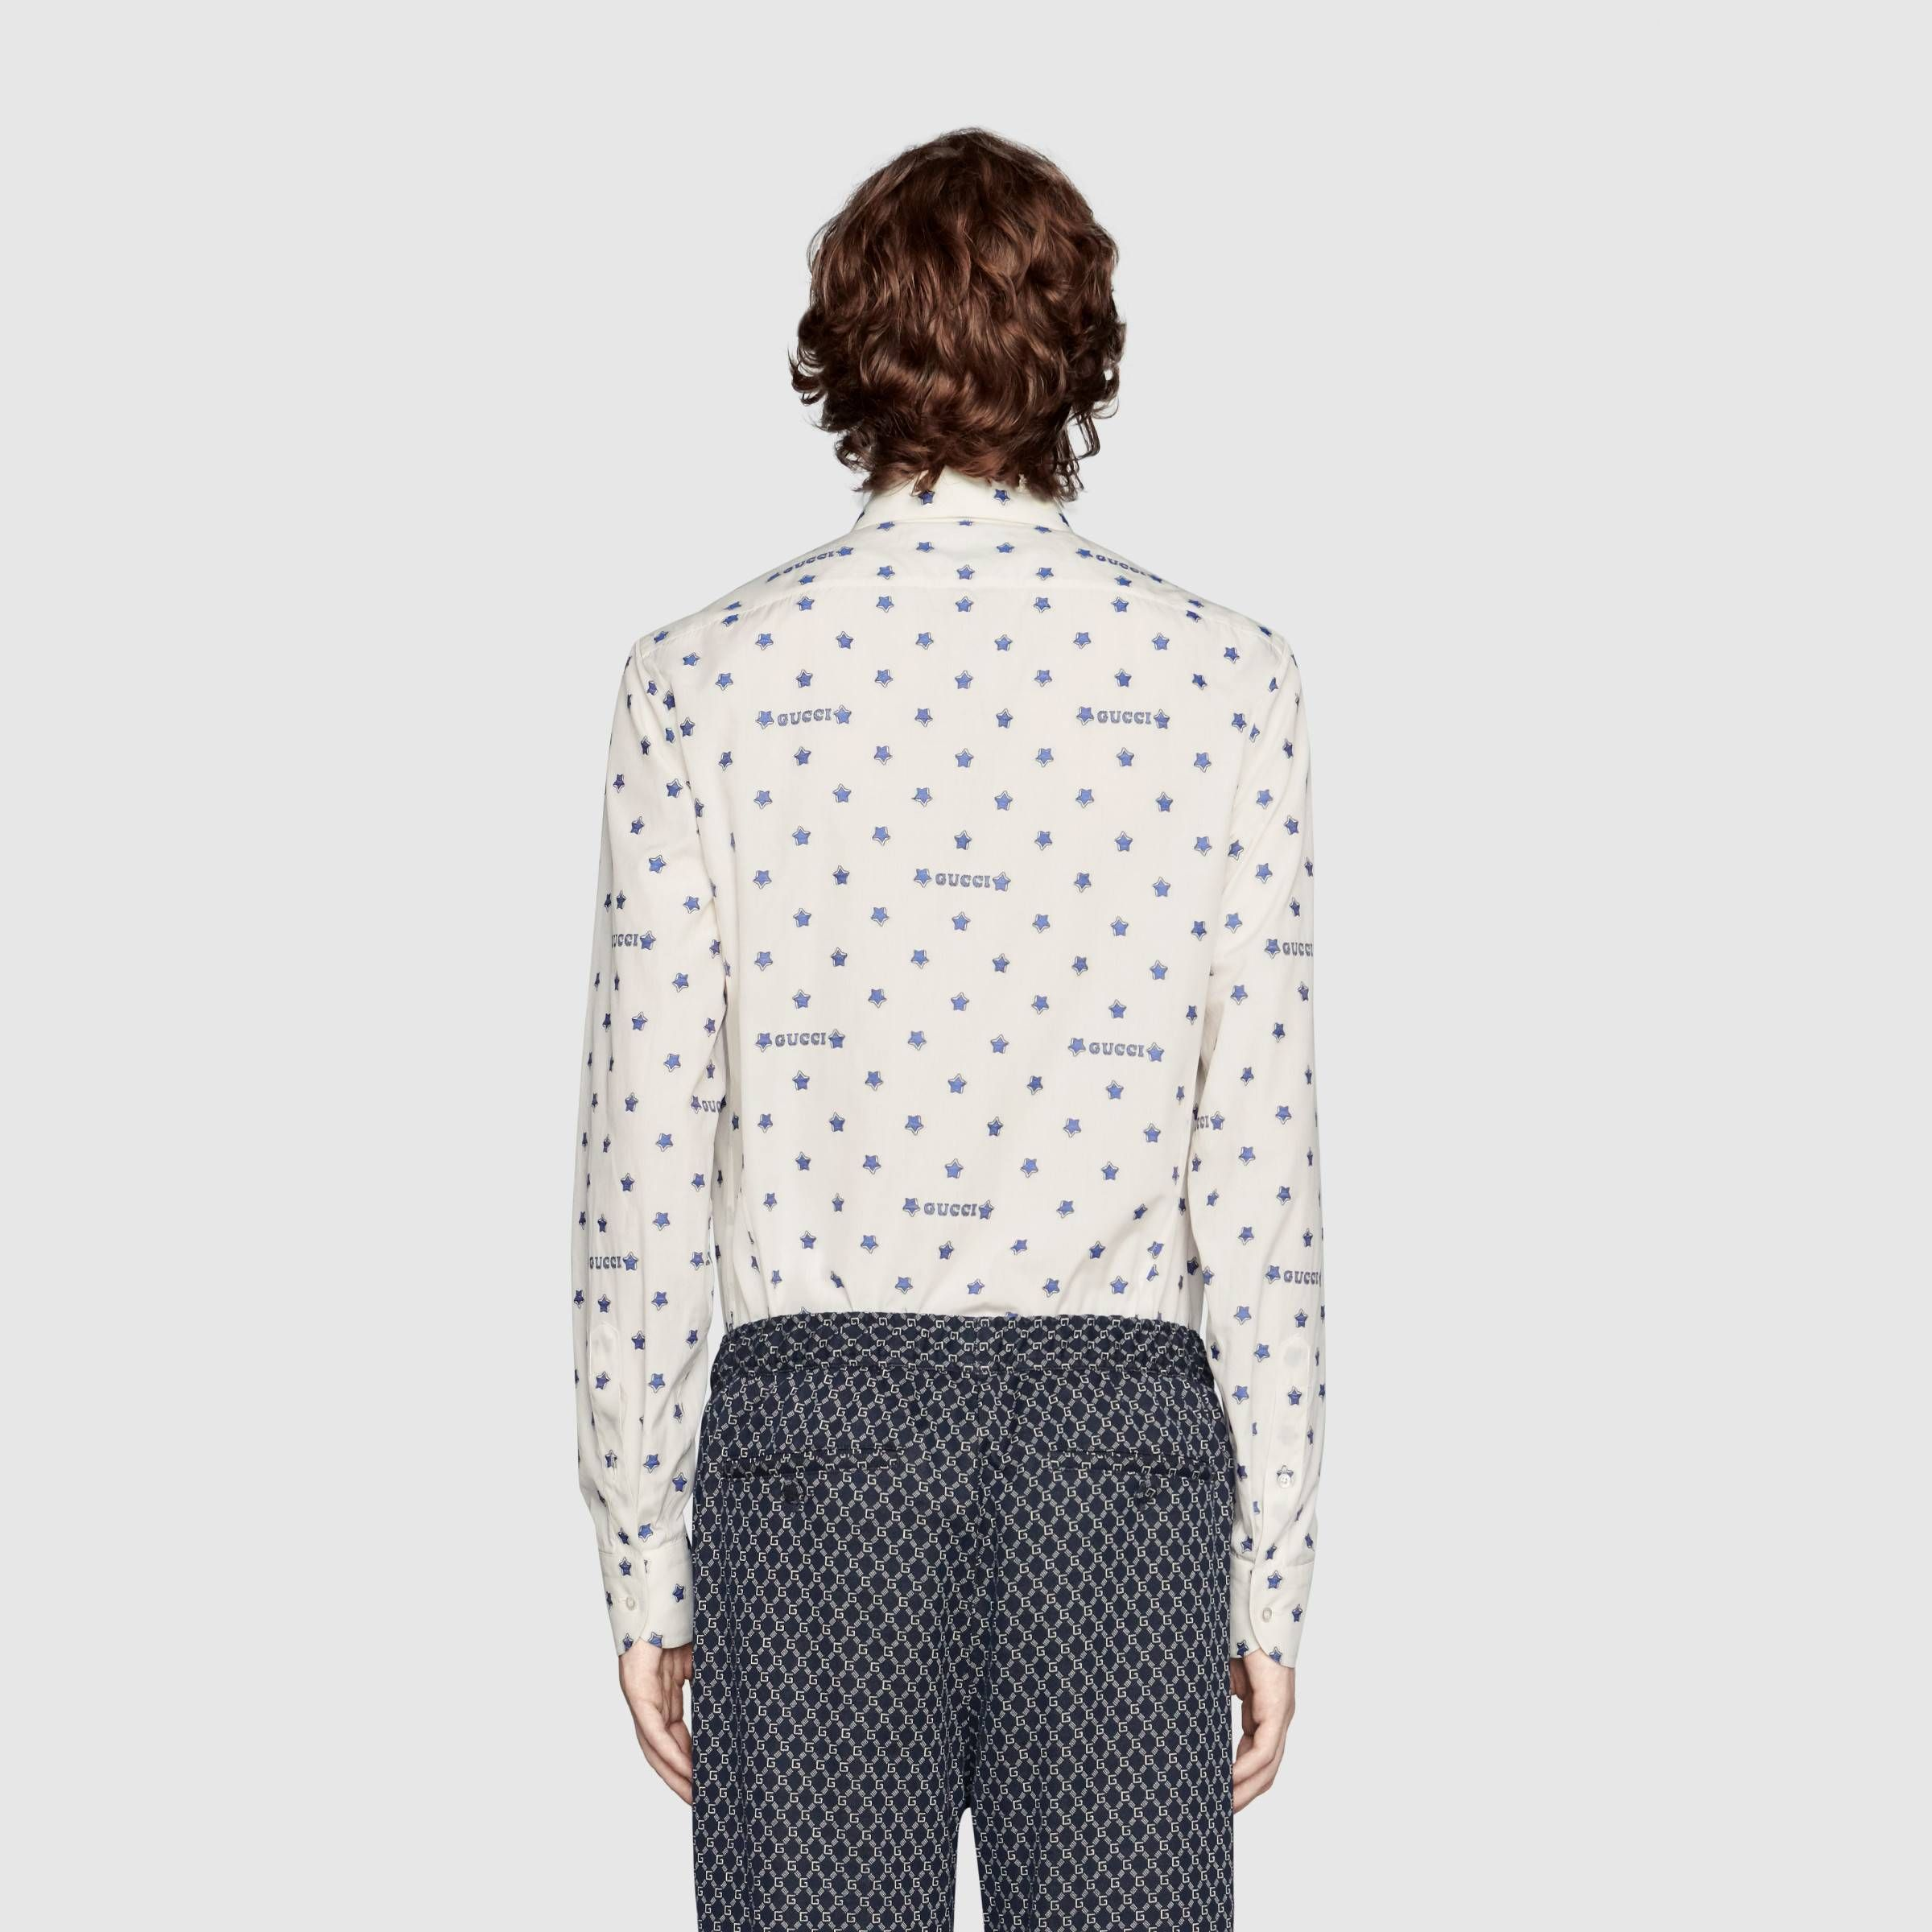 4e297ce02096 Gucci star fil coupé shirt in Off-white cotton with contrast Gucci star fil  coupé | Gucci Men's Formal Shirts